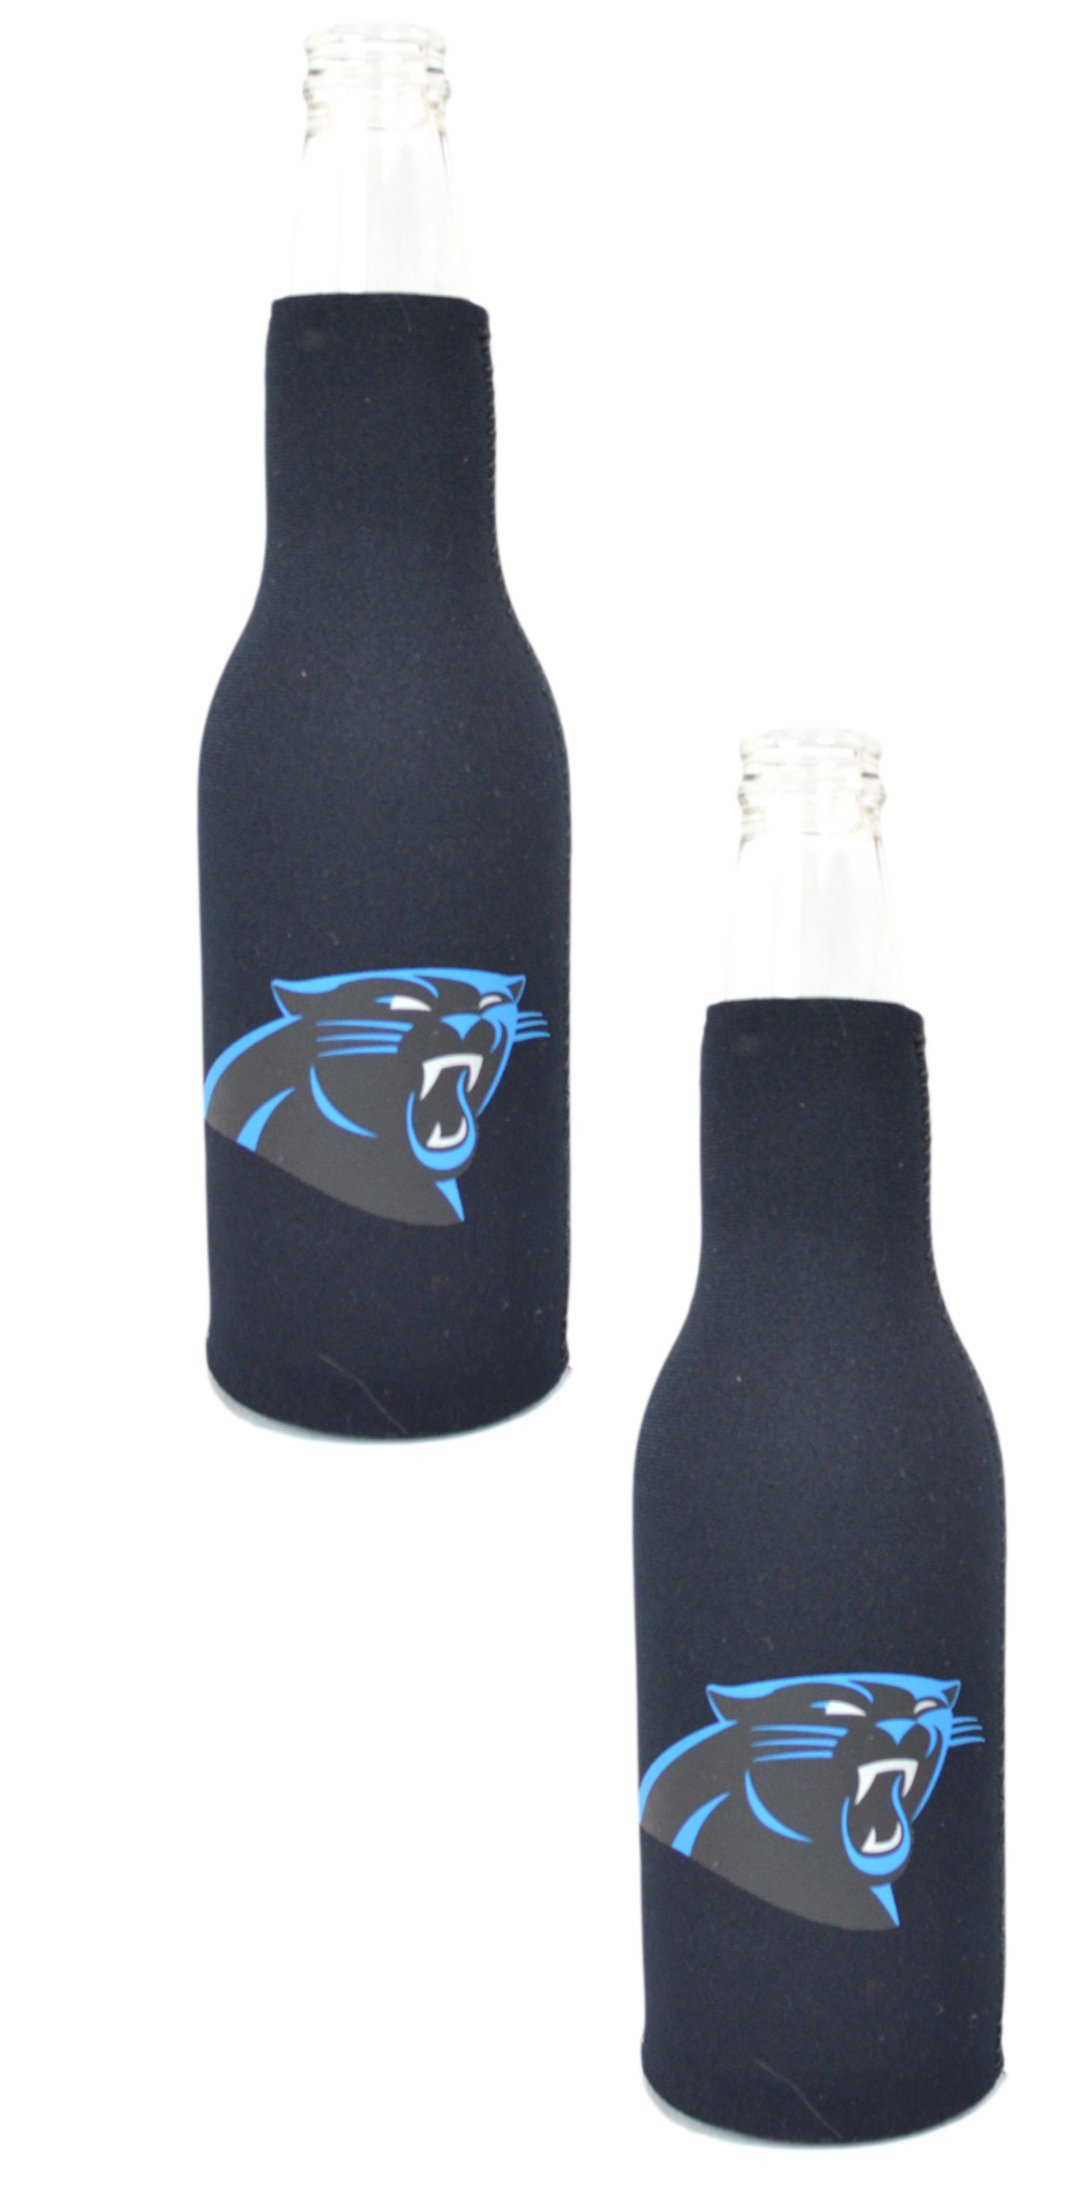 Official National Football League Fan Shop Authentic NFL 2-pack Insulated Bottle Cooler (Carolina Panthers)